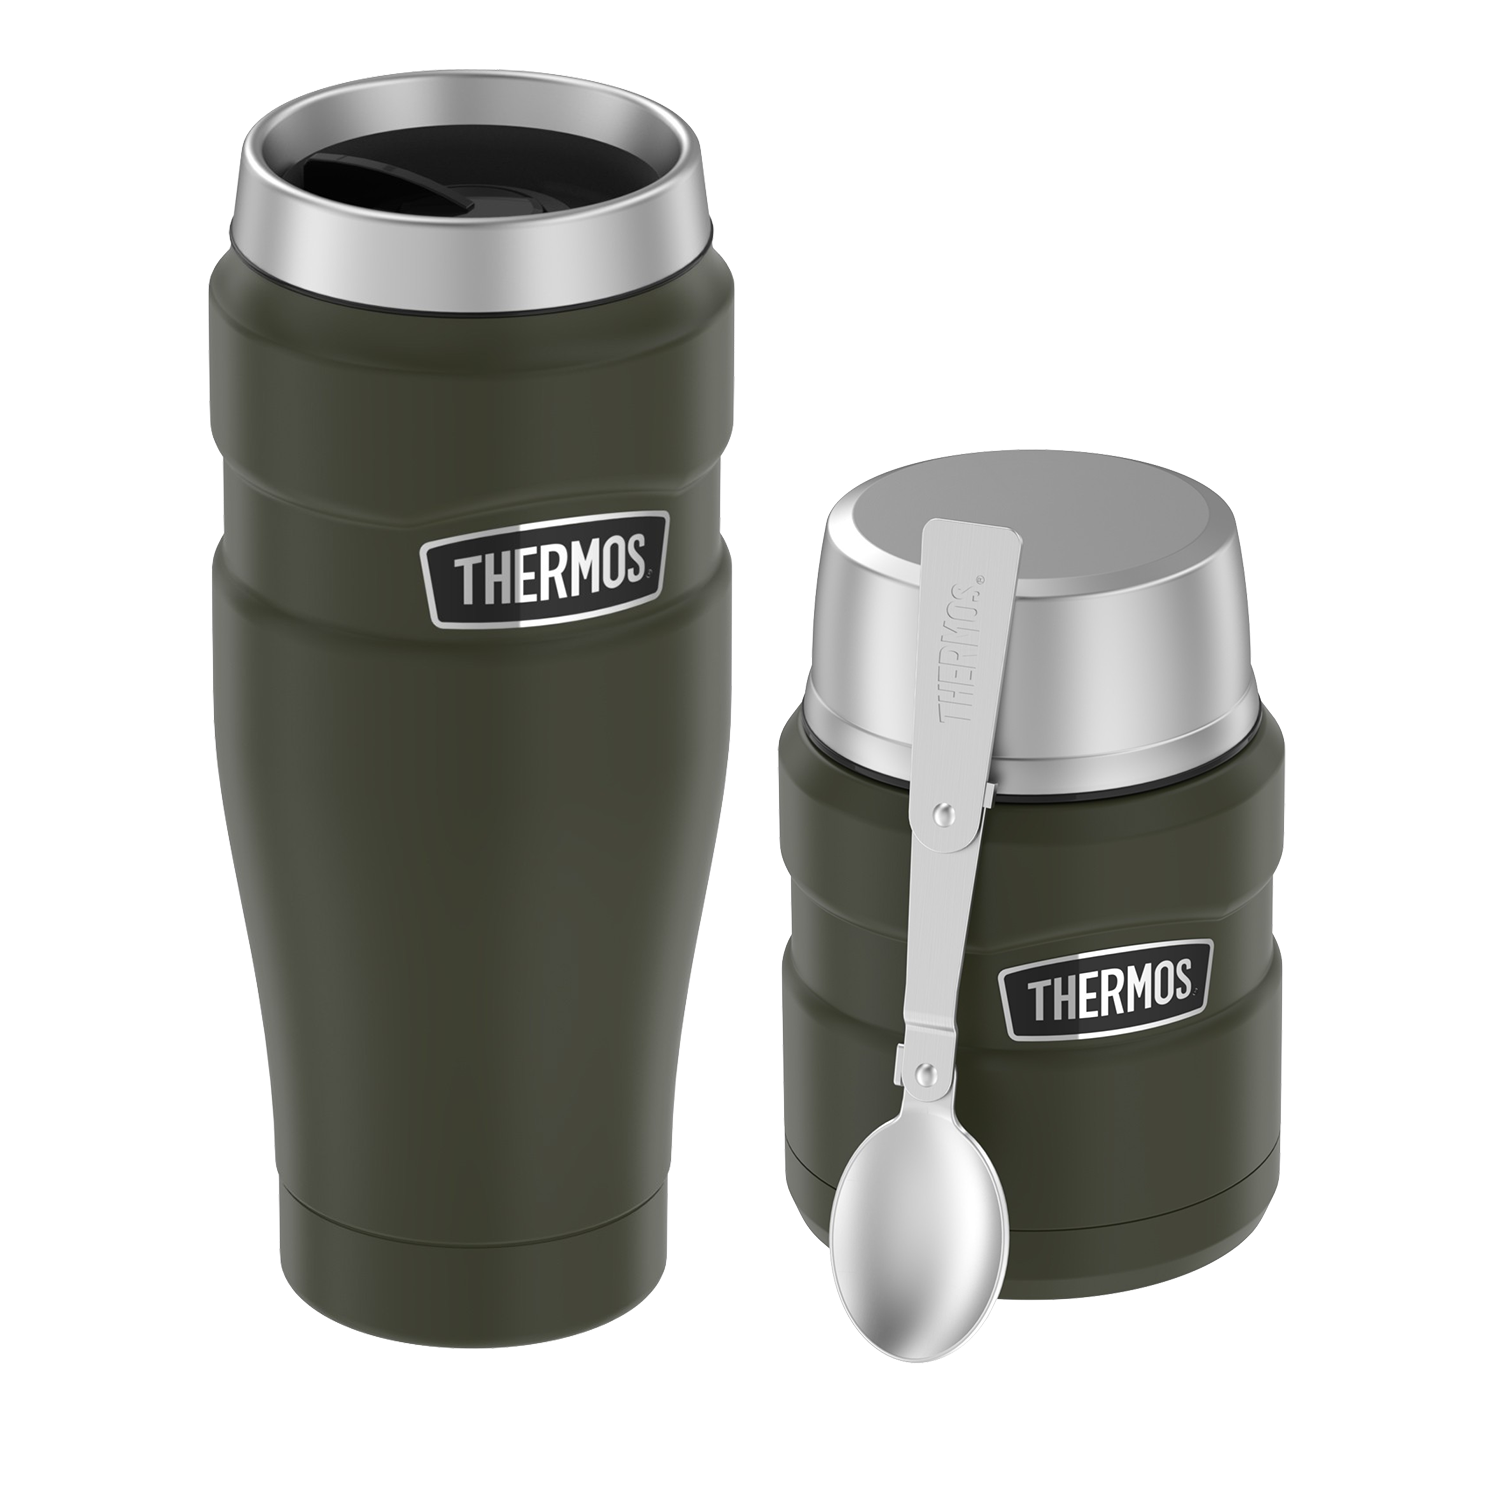 STAINLESS KING 16OZ STAINLESS STEEL TRAVEL TUMBLER AND FOOD JAR